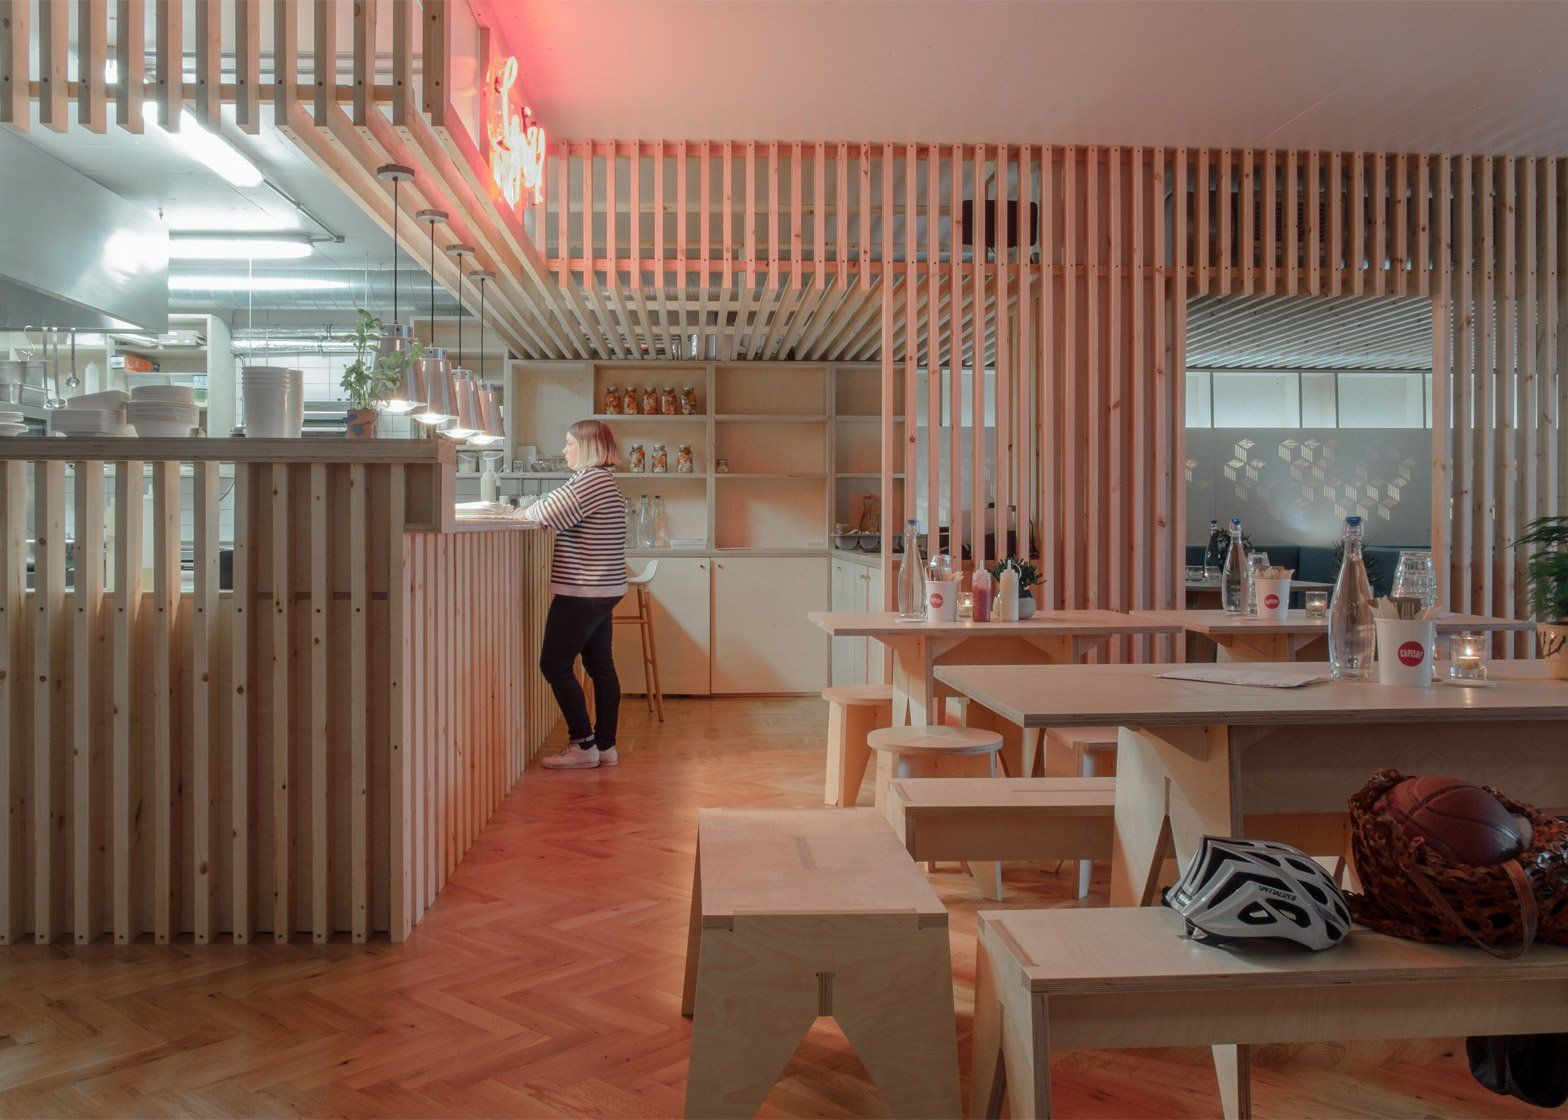 Fleet Architects Design Mason And Company S New Hackney Wick Bar Here East Commercial Space Design Space Restaurants Bar Restaurant Interior